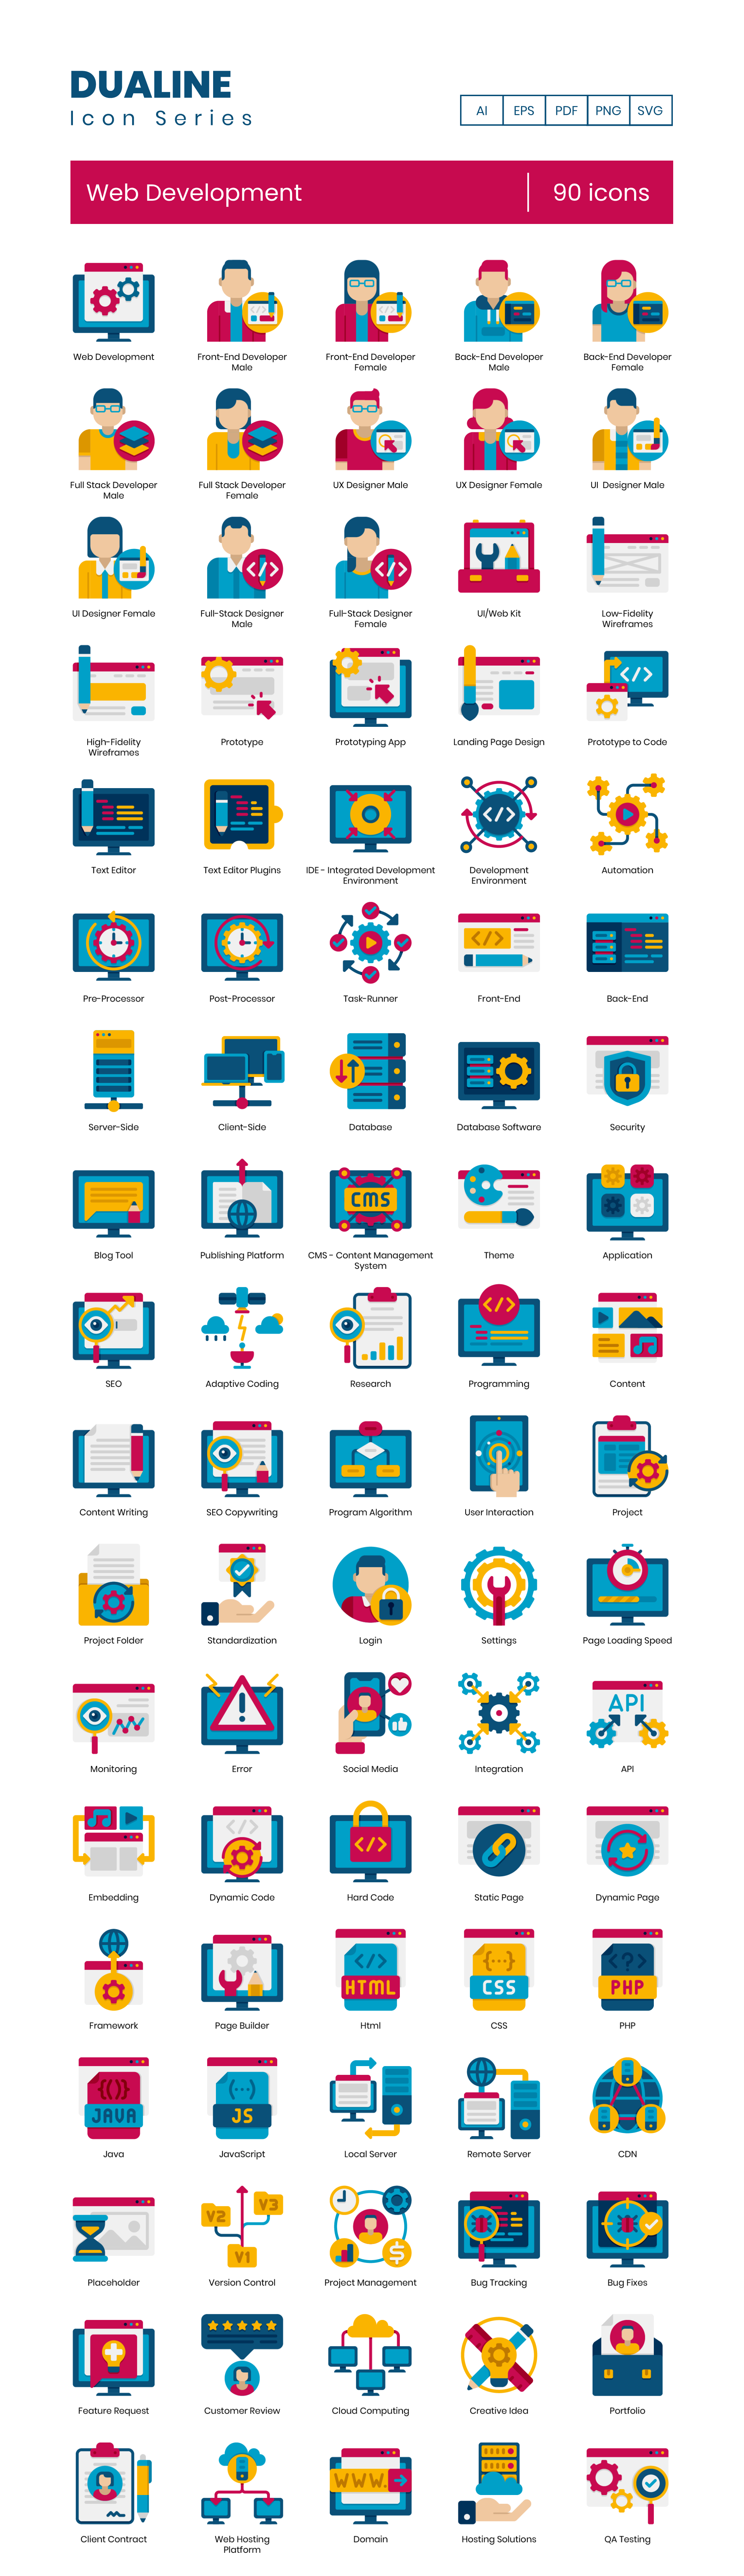 Web Development Vector Icons Preview Image